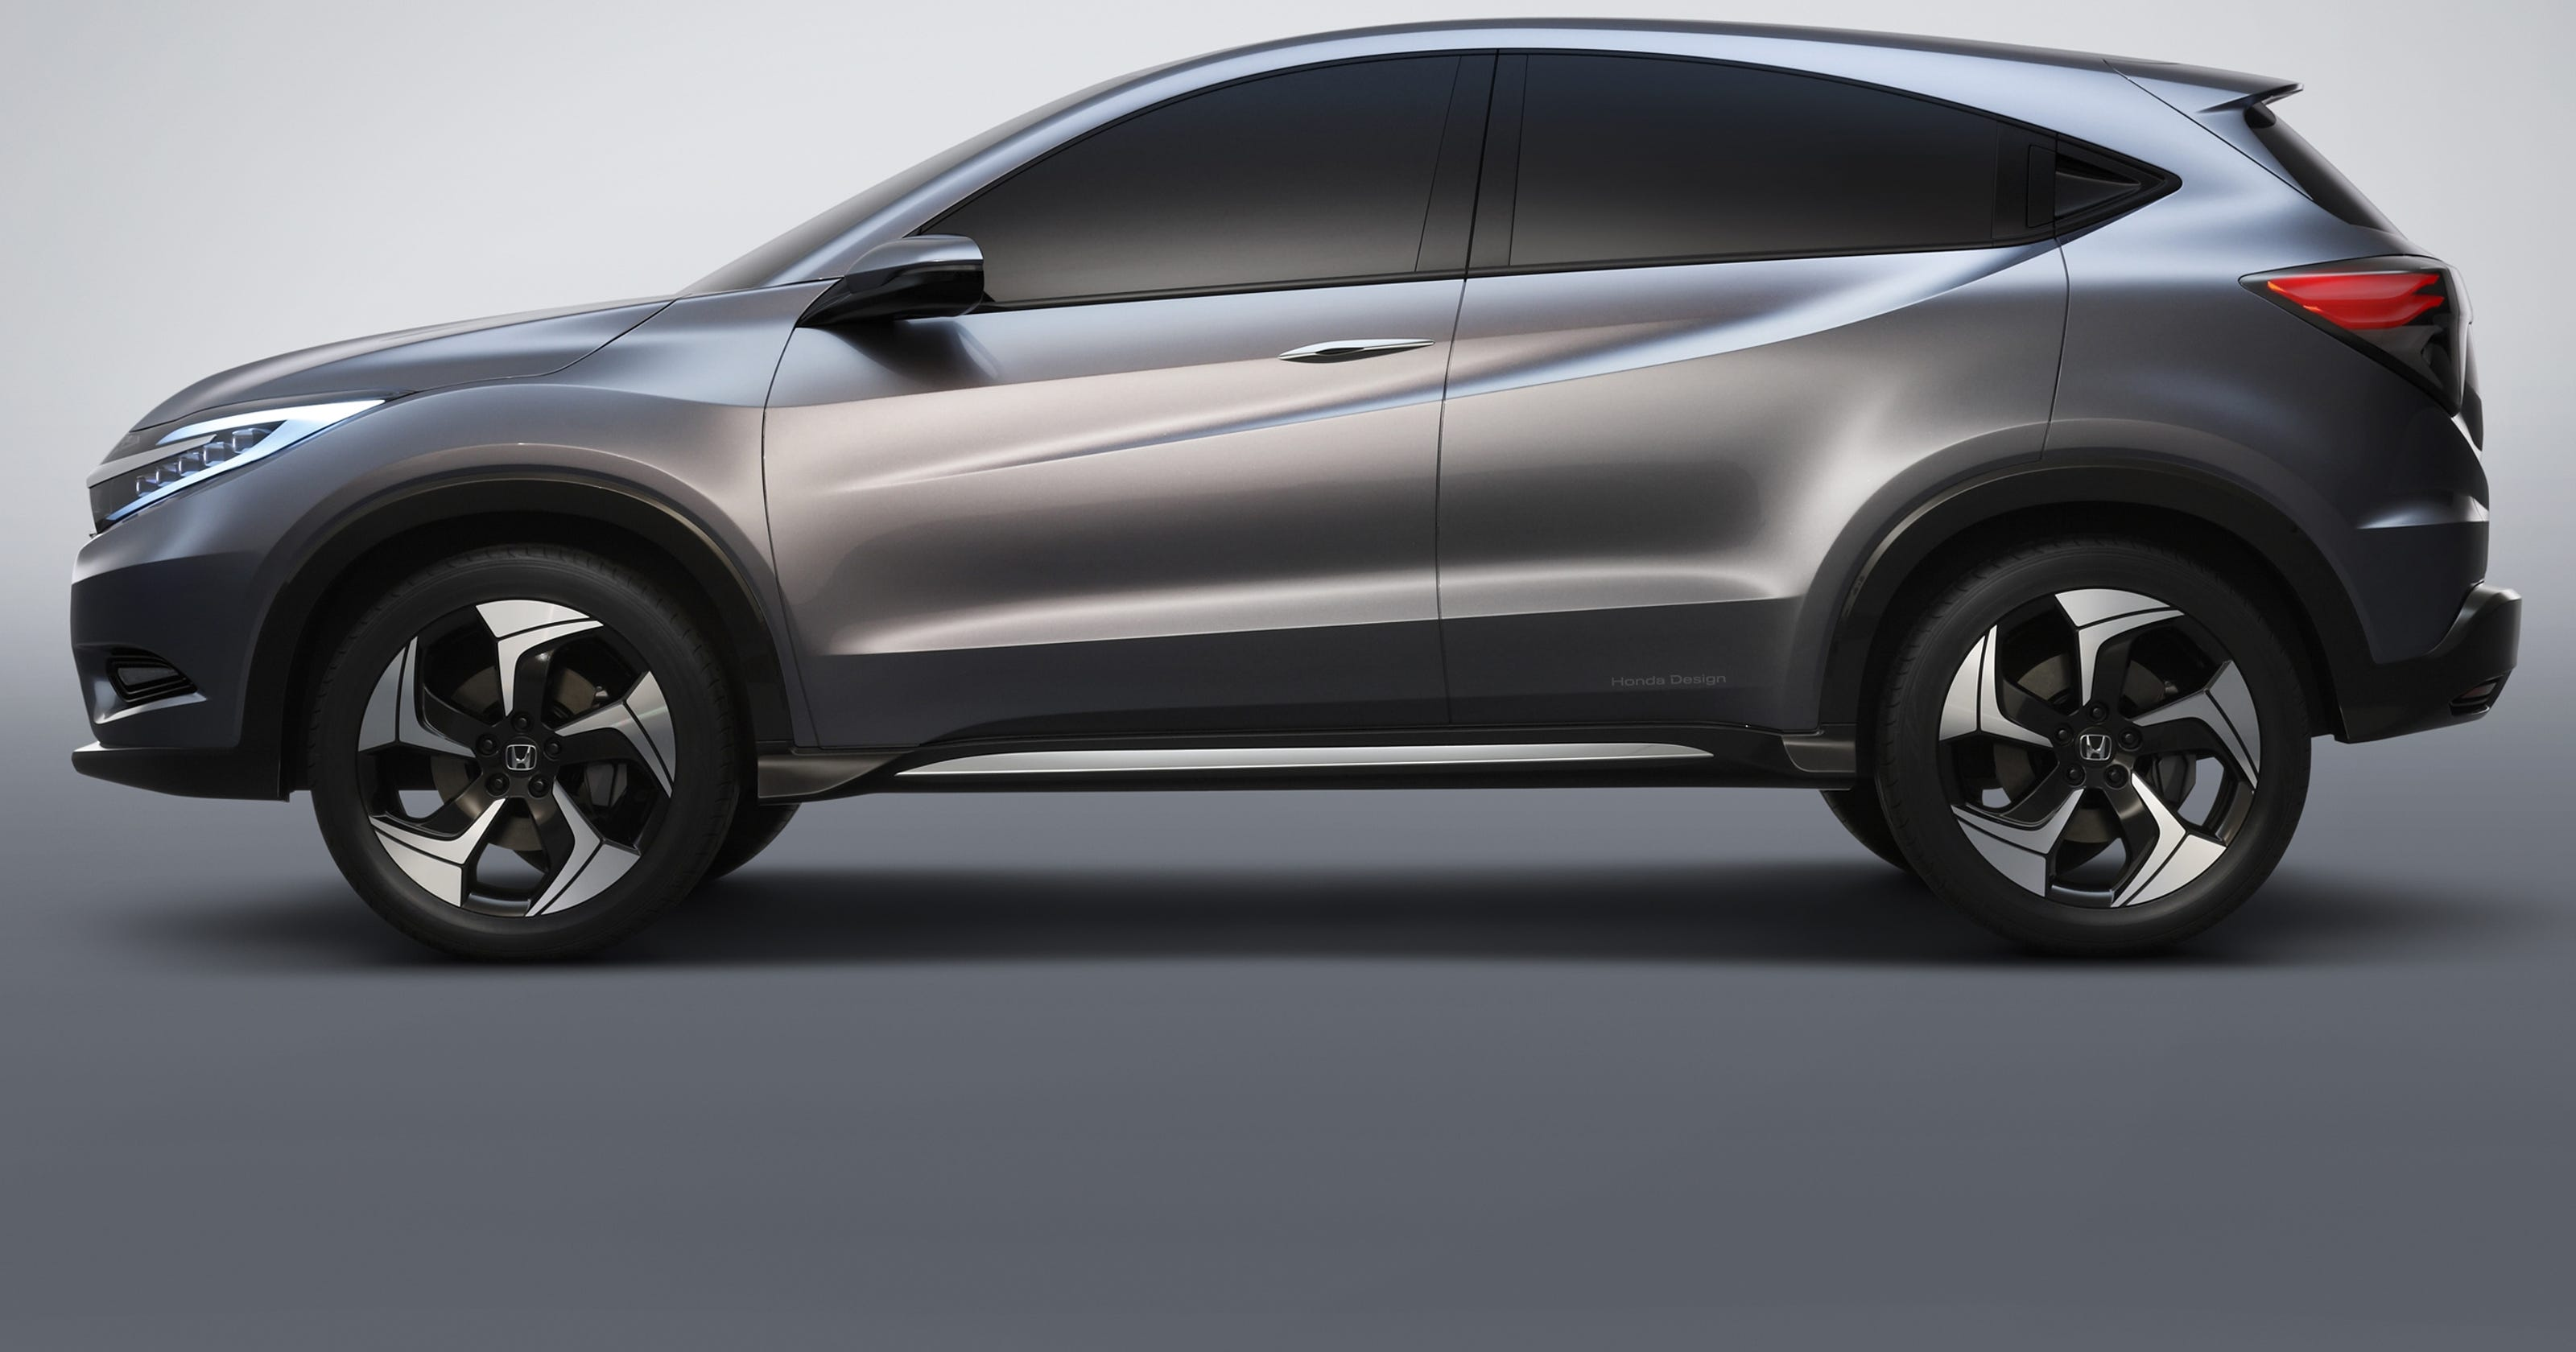 Best Suv For The Money >> Honda portrays new small crossover as 'urban SUV'